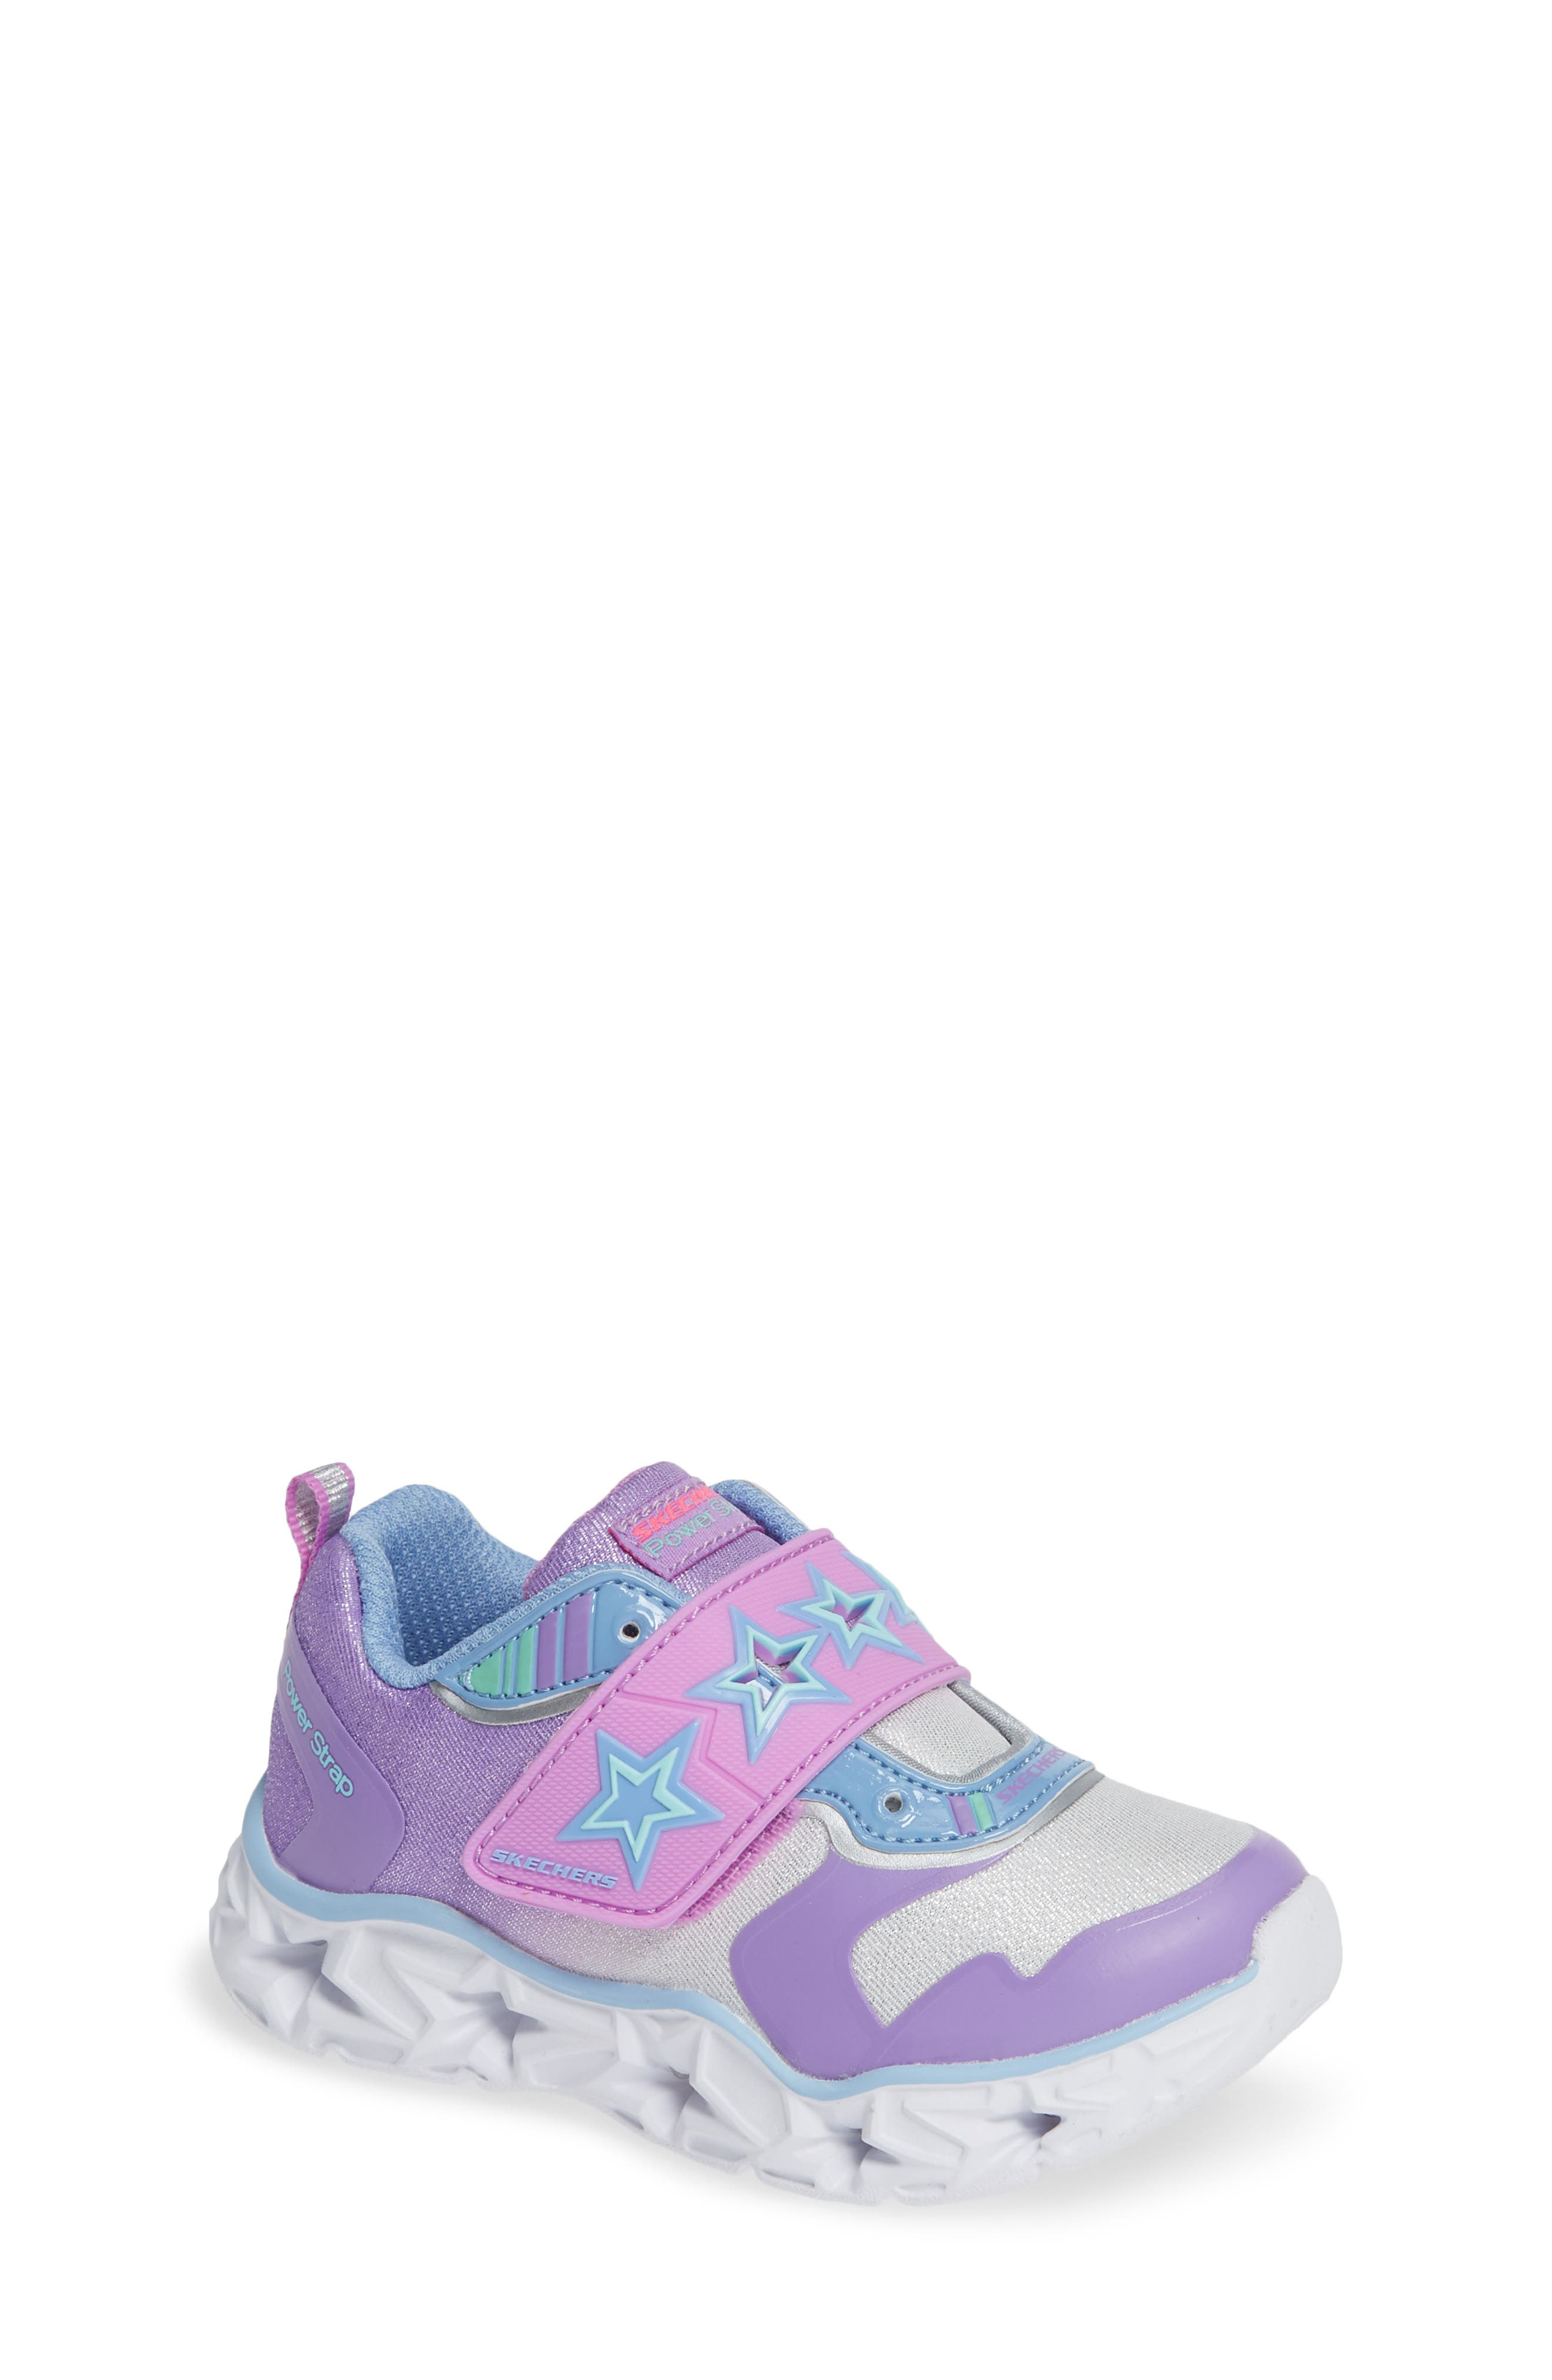 Galaxy Lights Sneakers,                         Main,                         color, 500